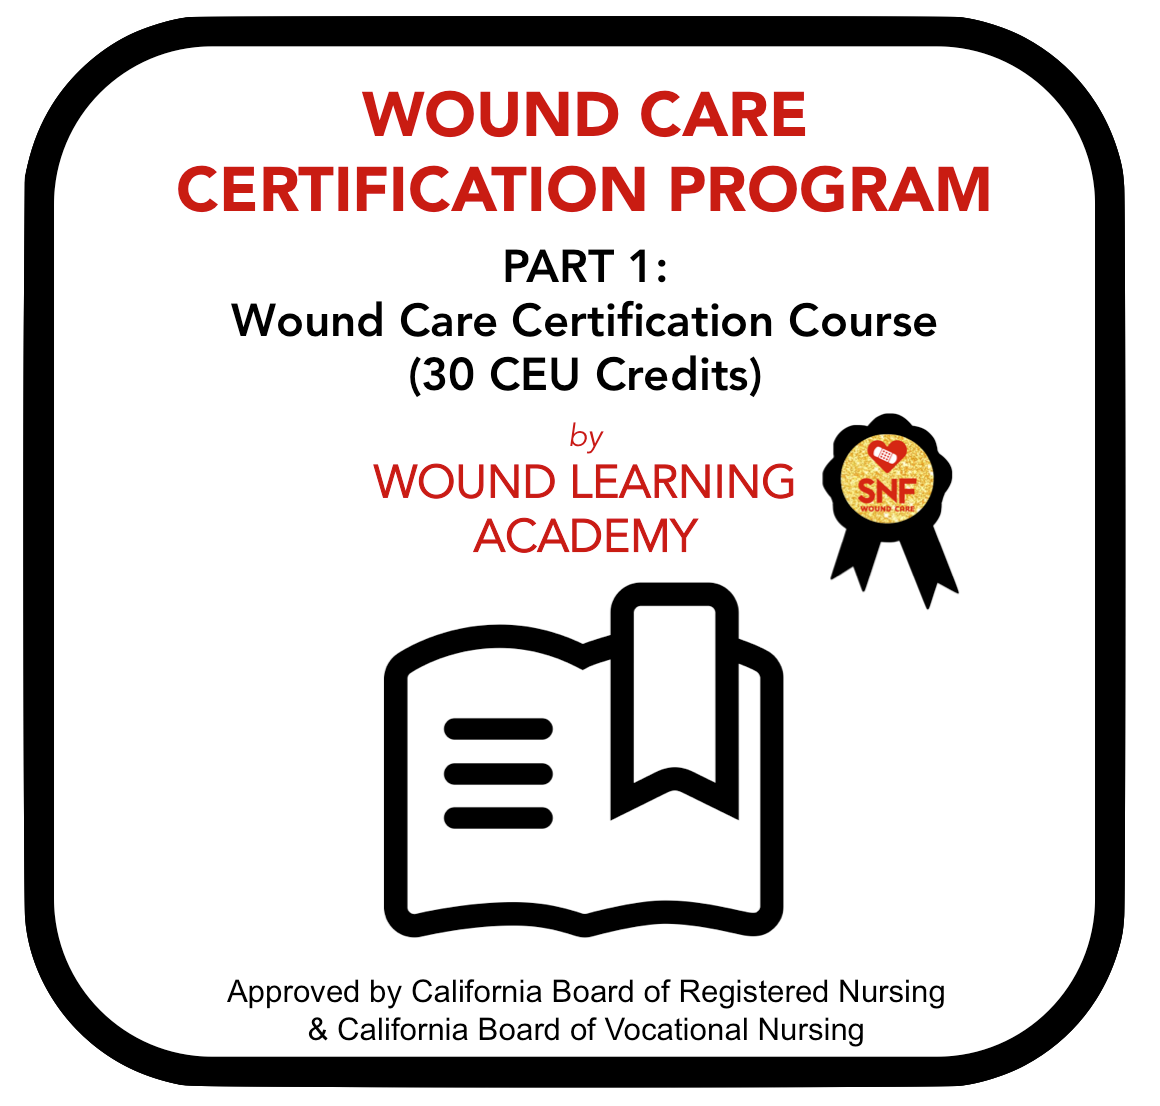 WOUND CARE CERTIFICATION - WSOC